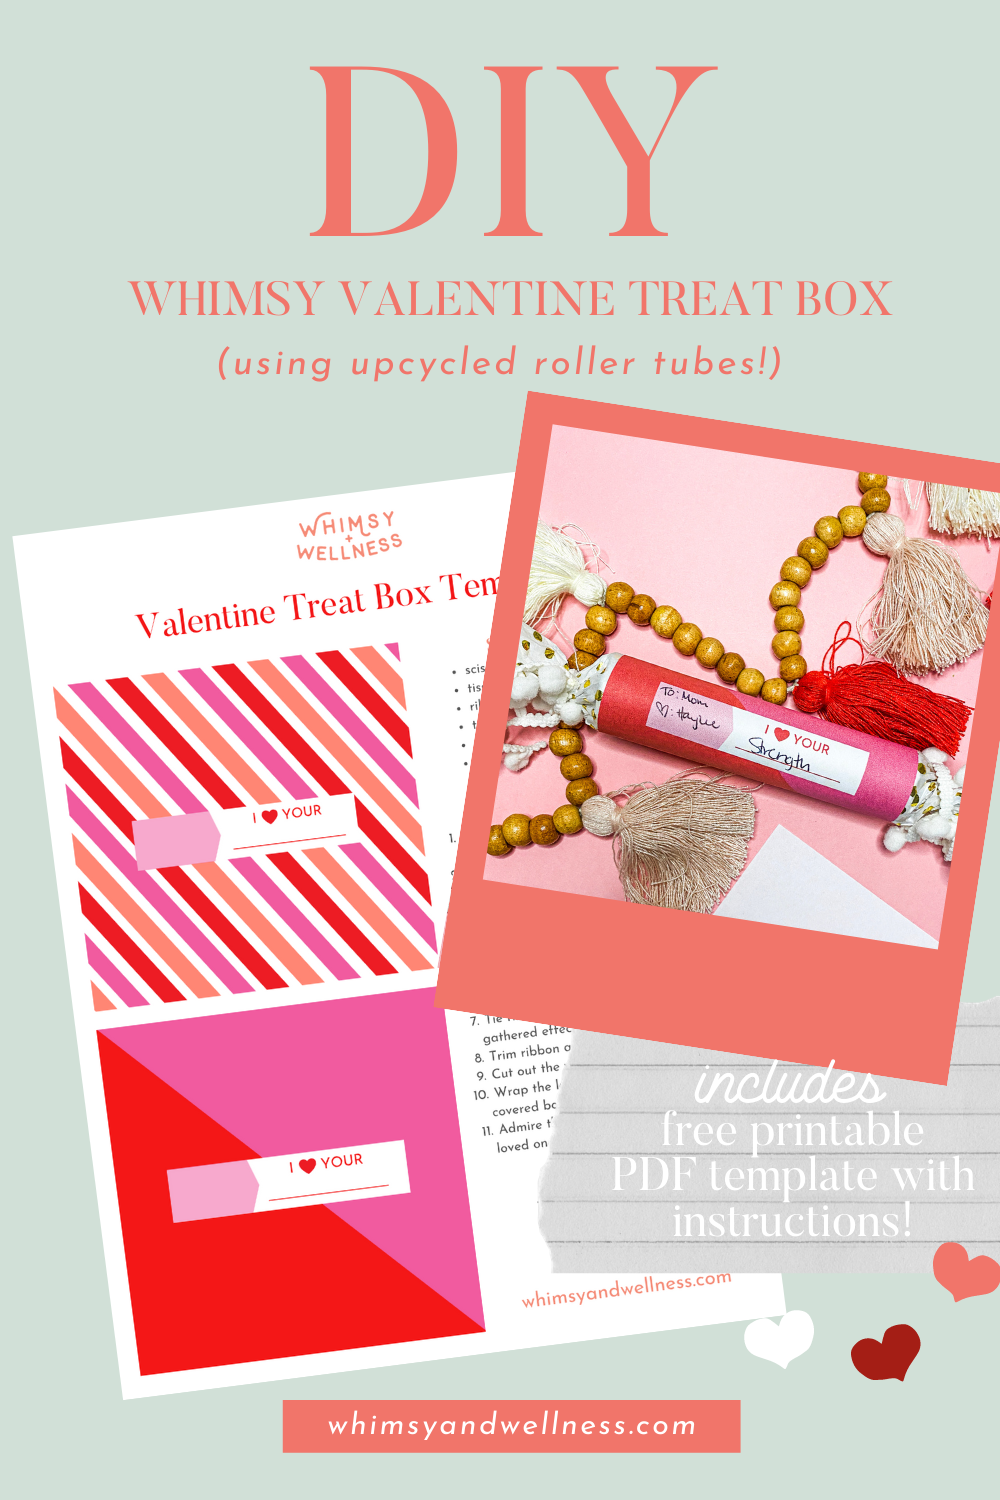 DIY Upcycled Valentine Treat Box